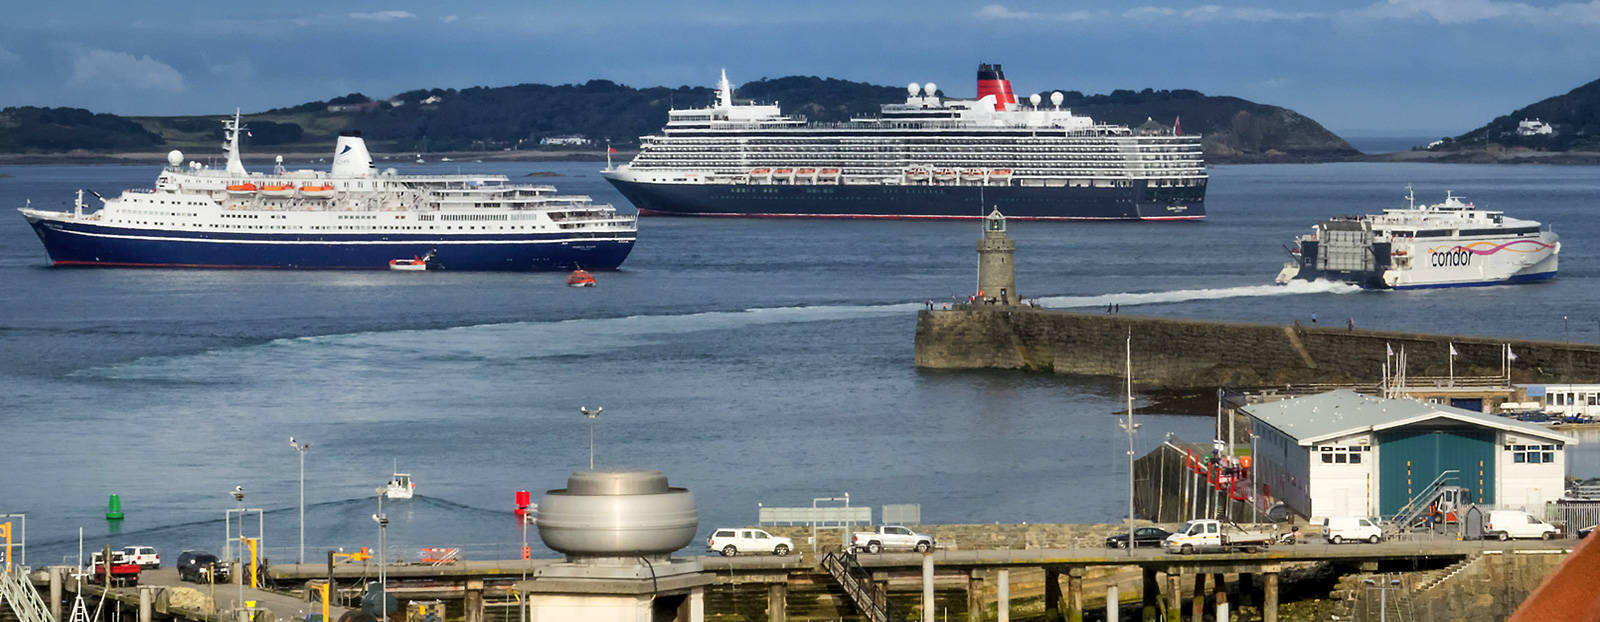 Cruise ships and Condor outside the harbour